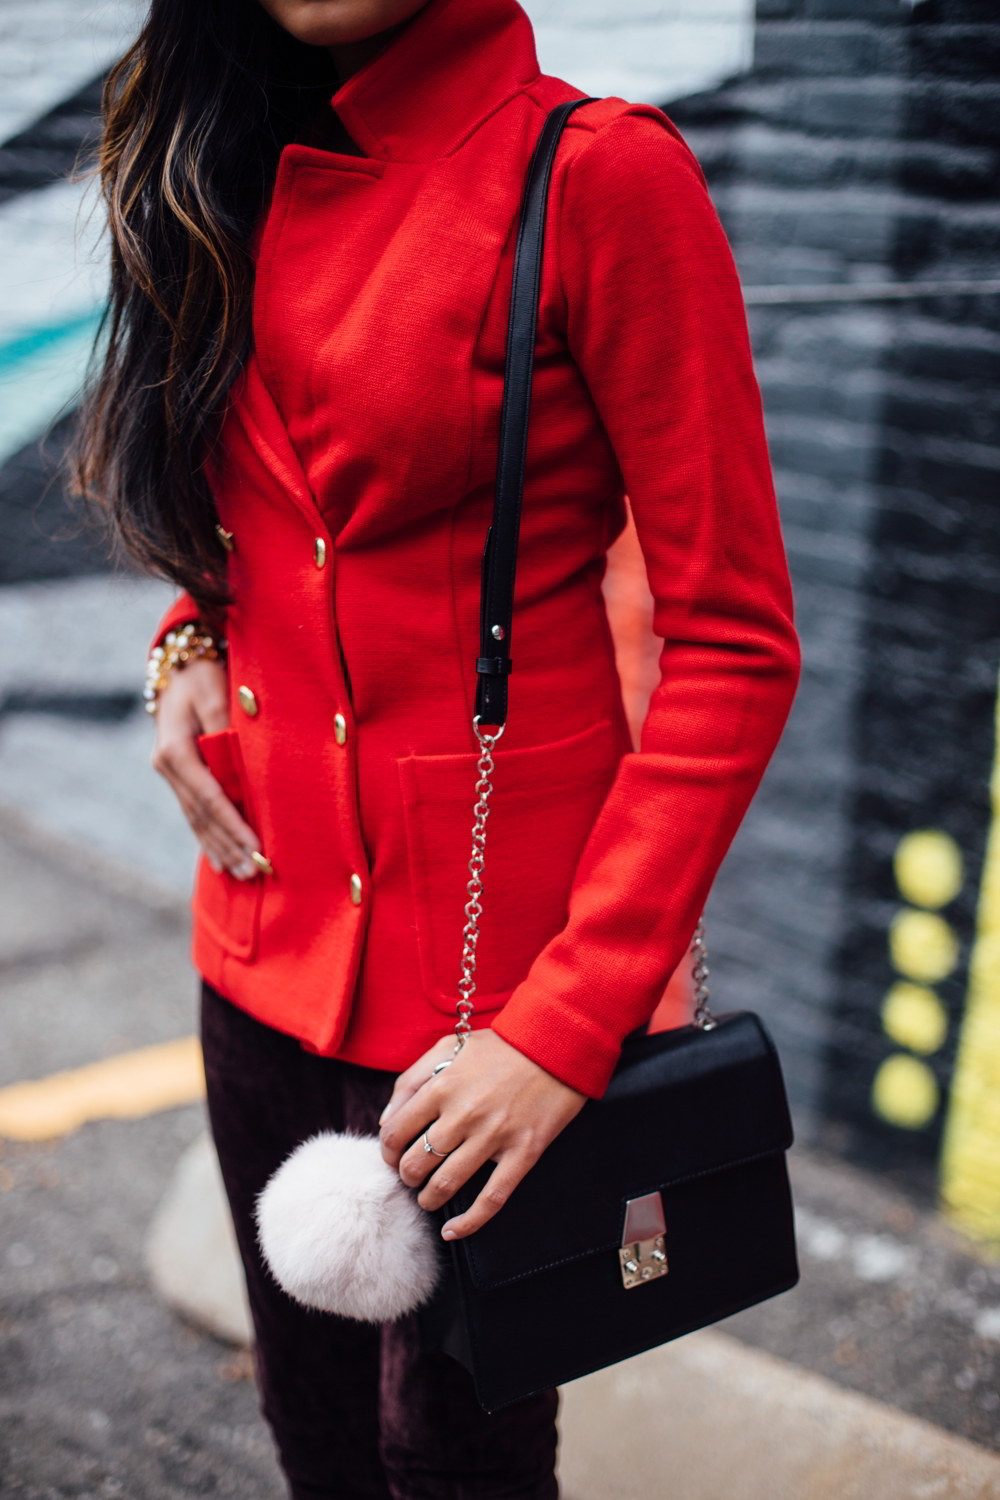 velvet-burgundy-pants-red-holiday-season-style-blogger-outfit 5